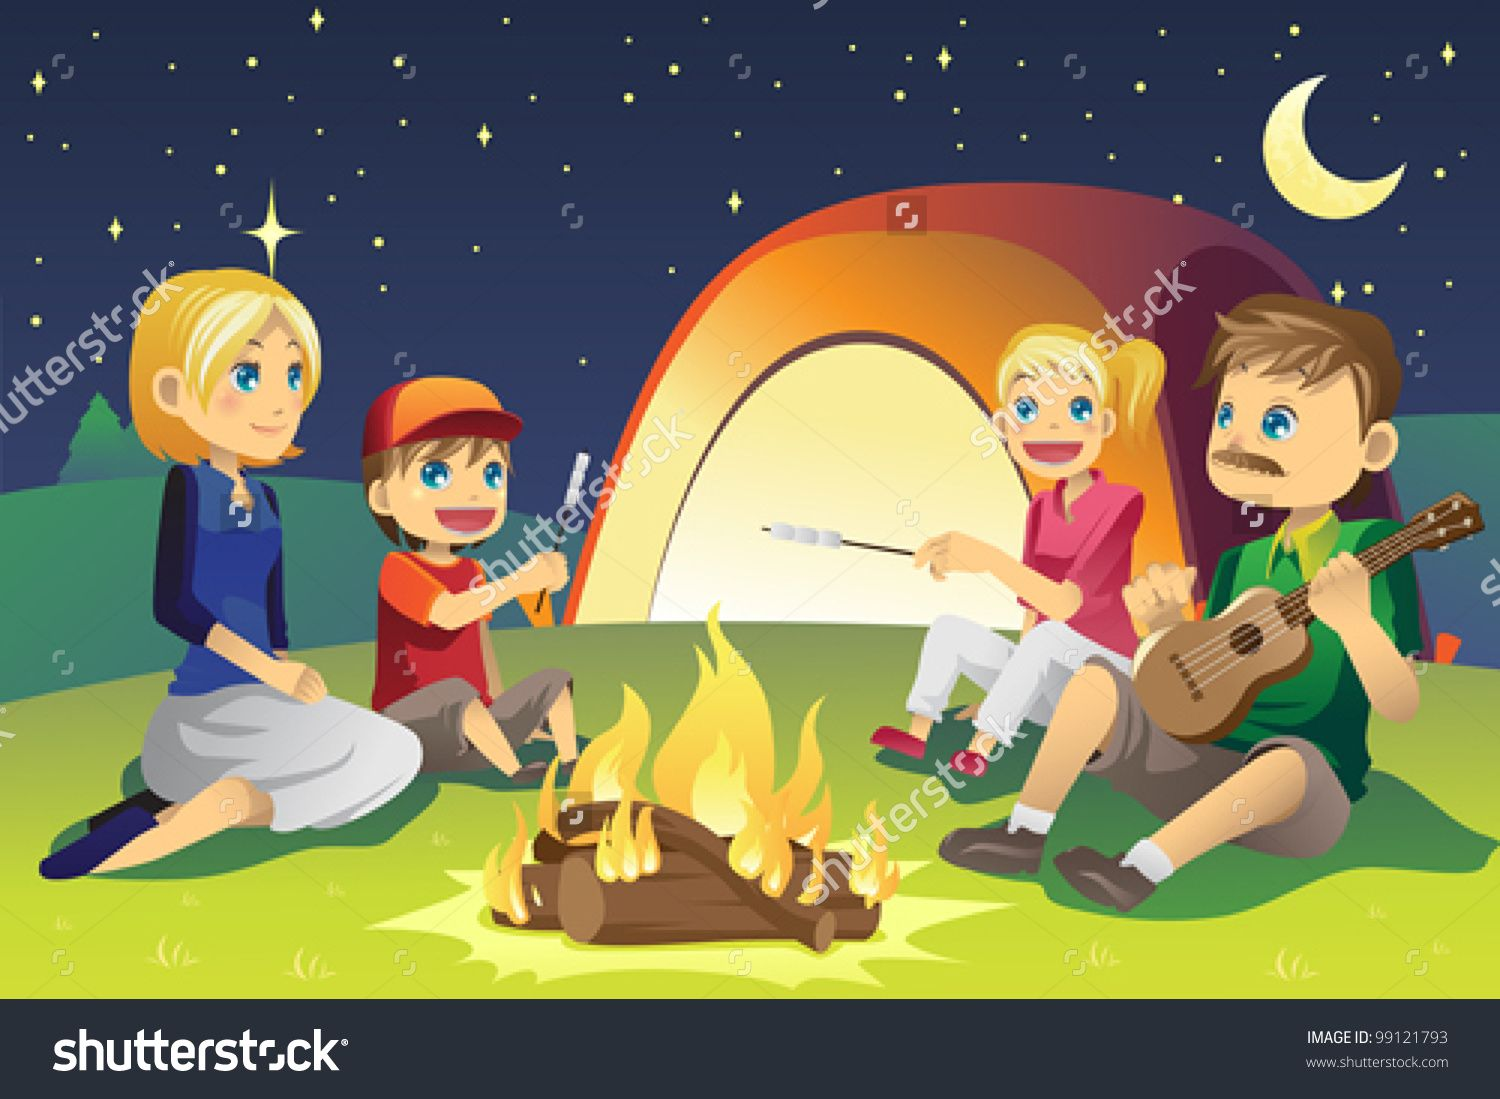 A Vector Illustration Of A Family Camping Camping Cartoon Backyard Camping Family Camping Gear